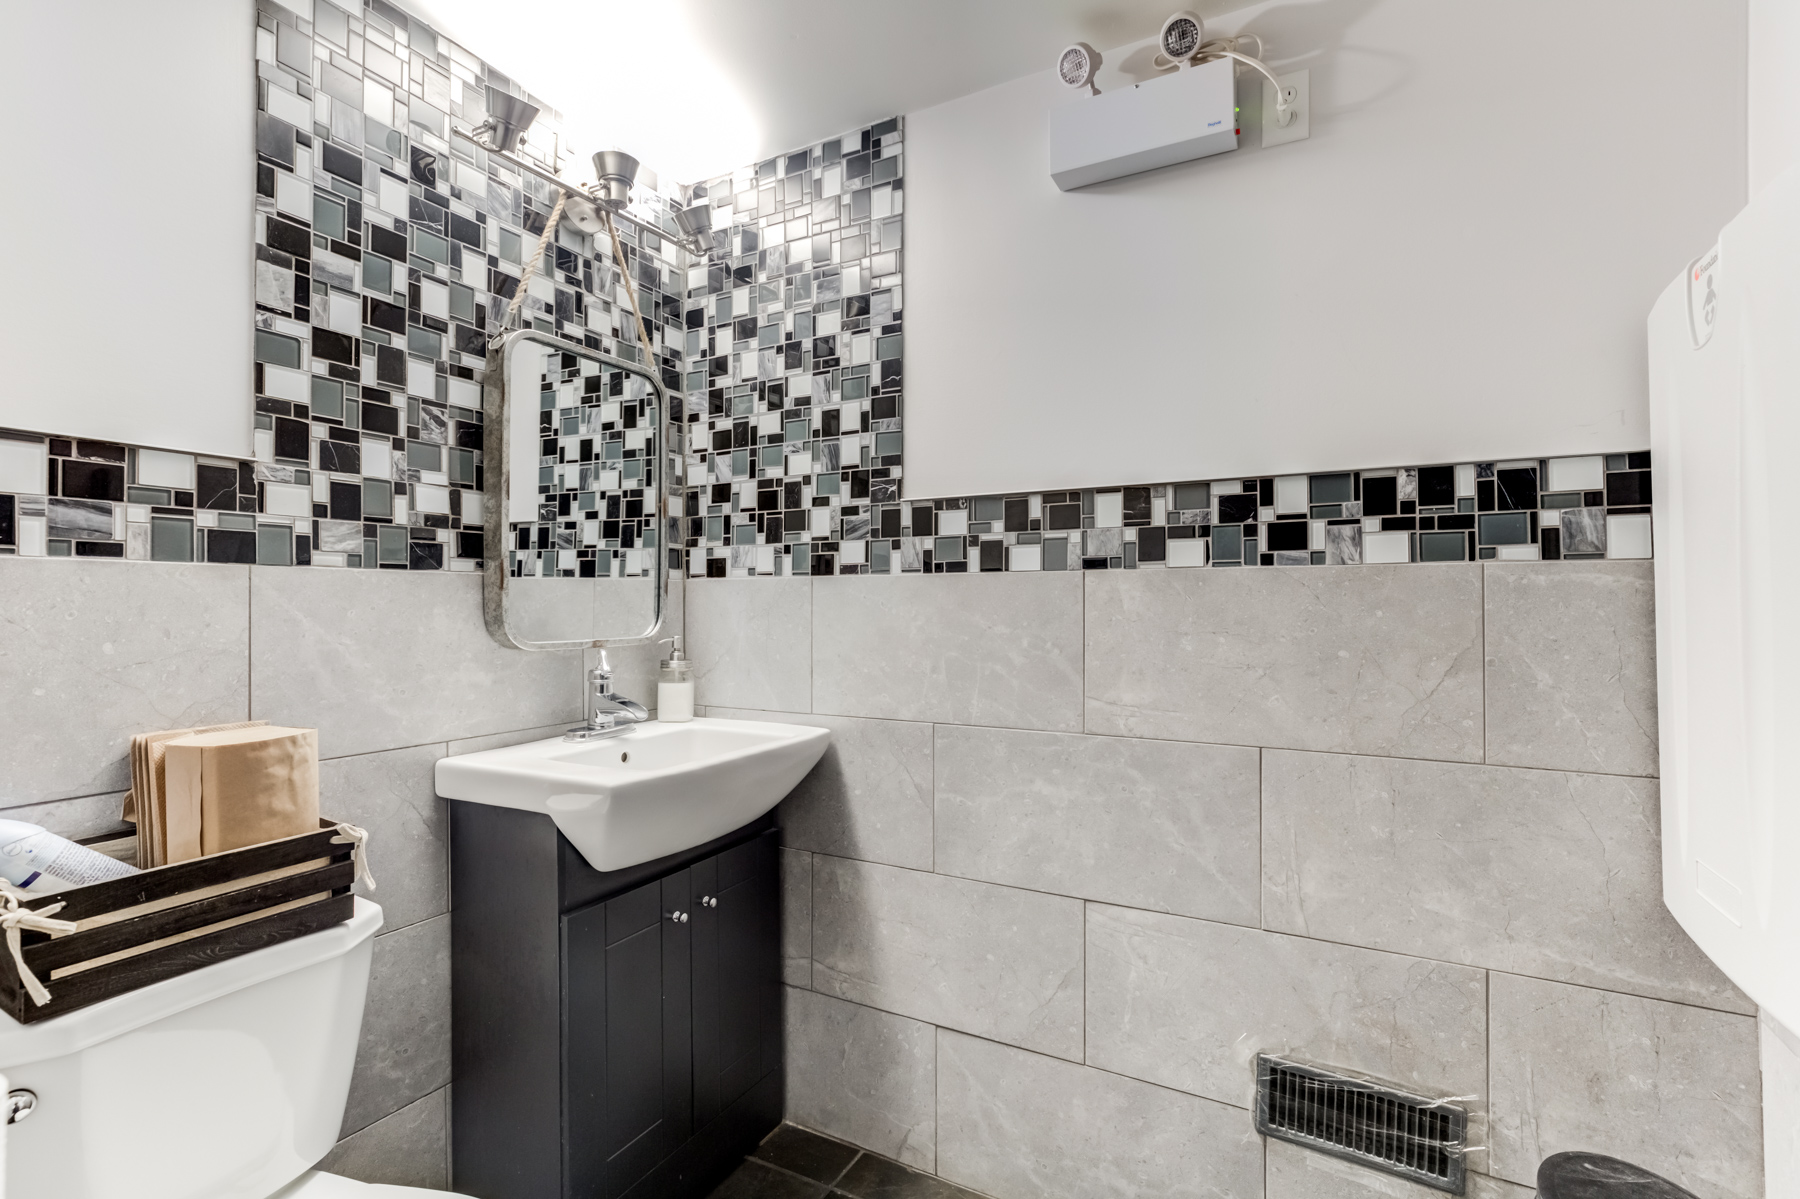 Newly renovated bathroom at 463 Danforth Ave.